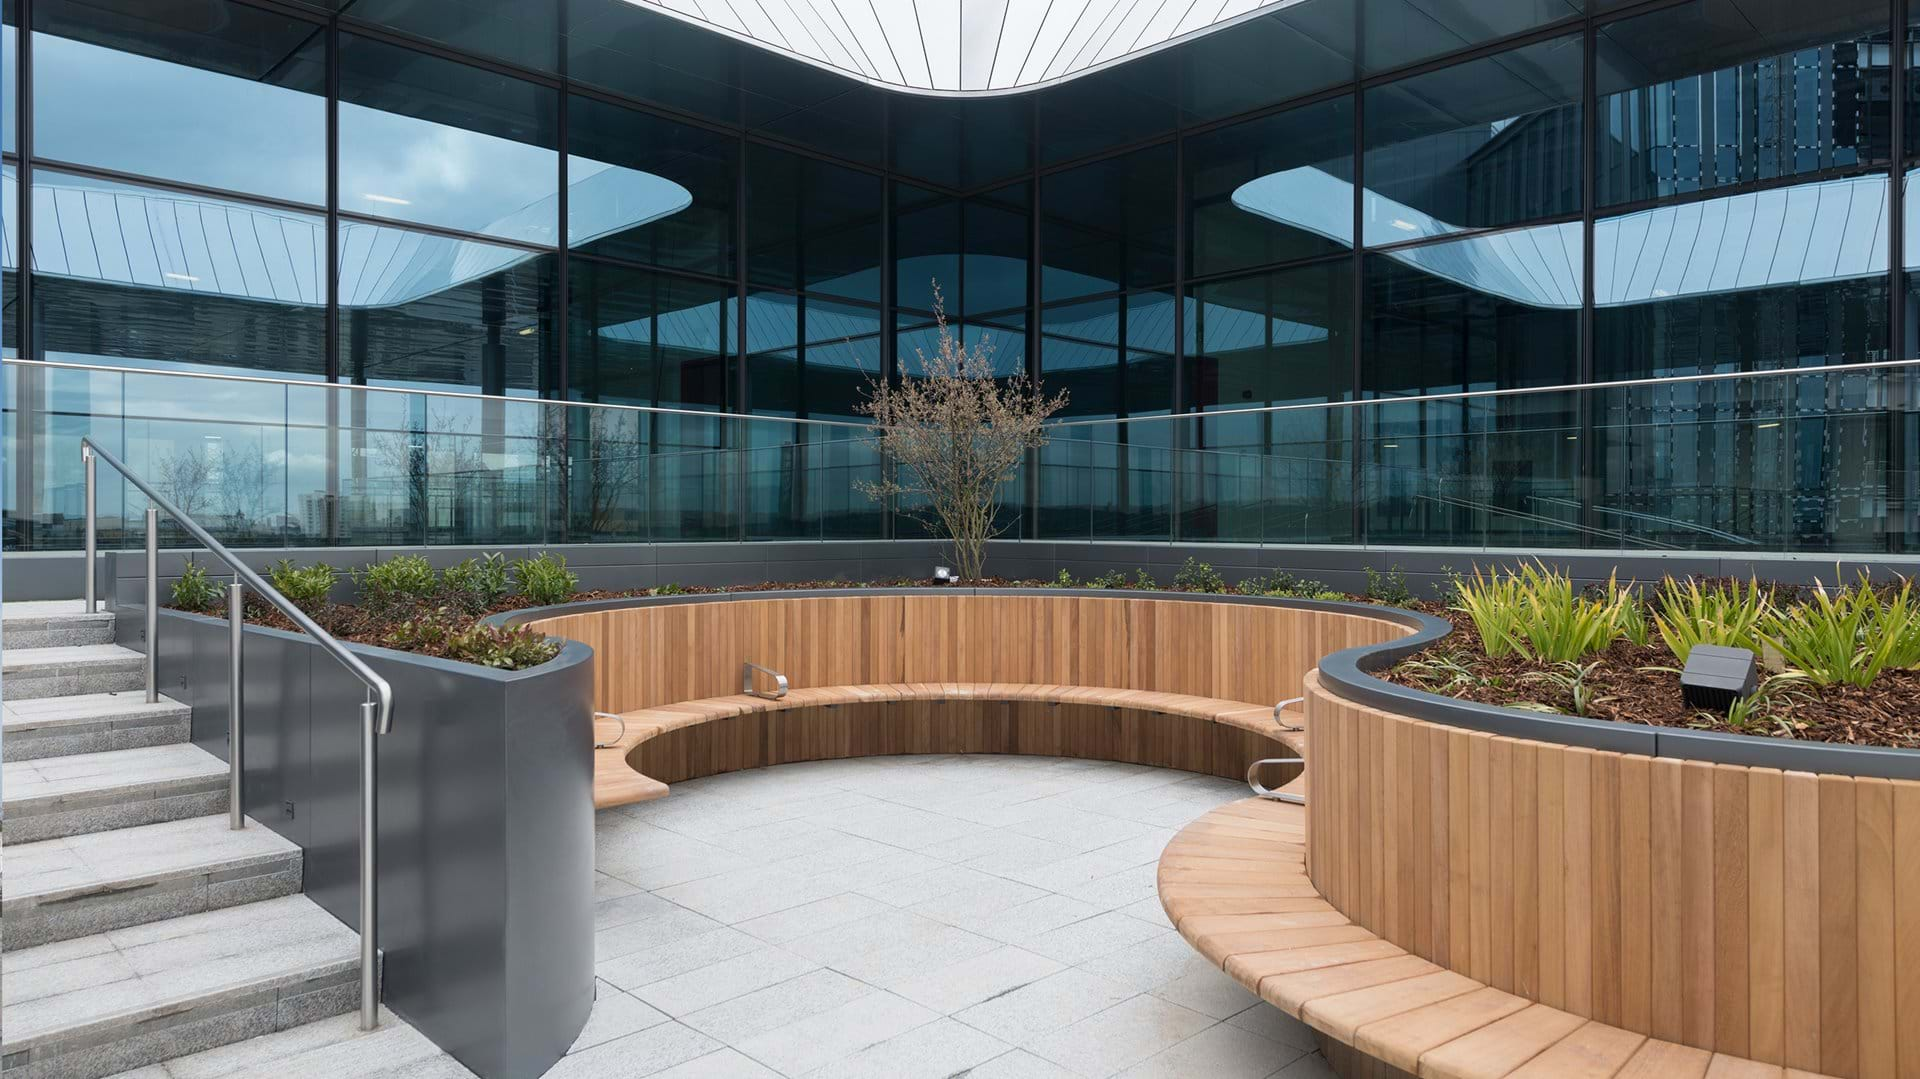 BBC Headquarters - Wales - Foster + Partners - IGS Magazine - Press Release - 6